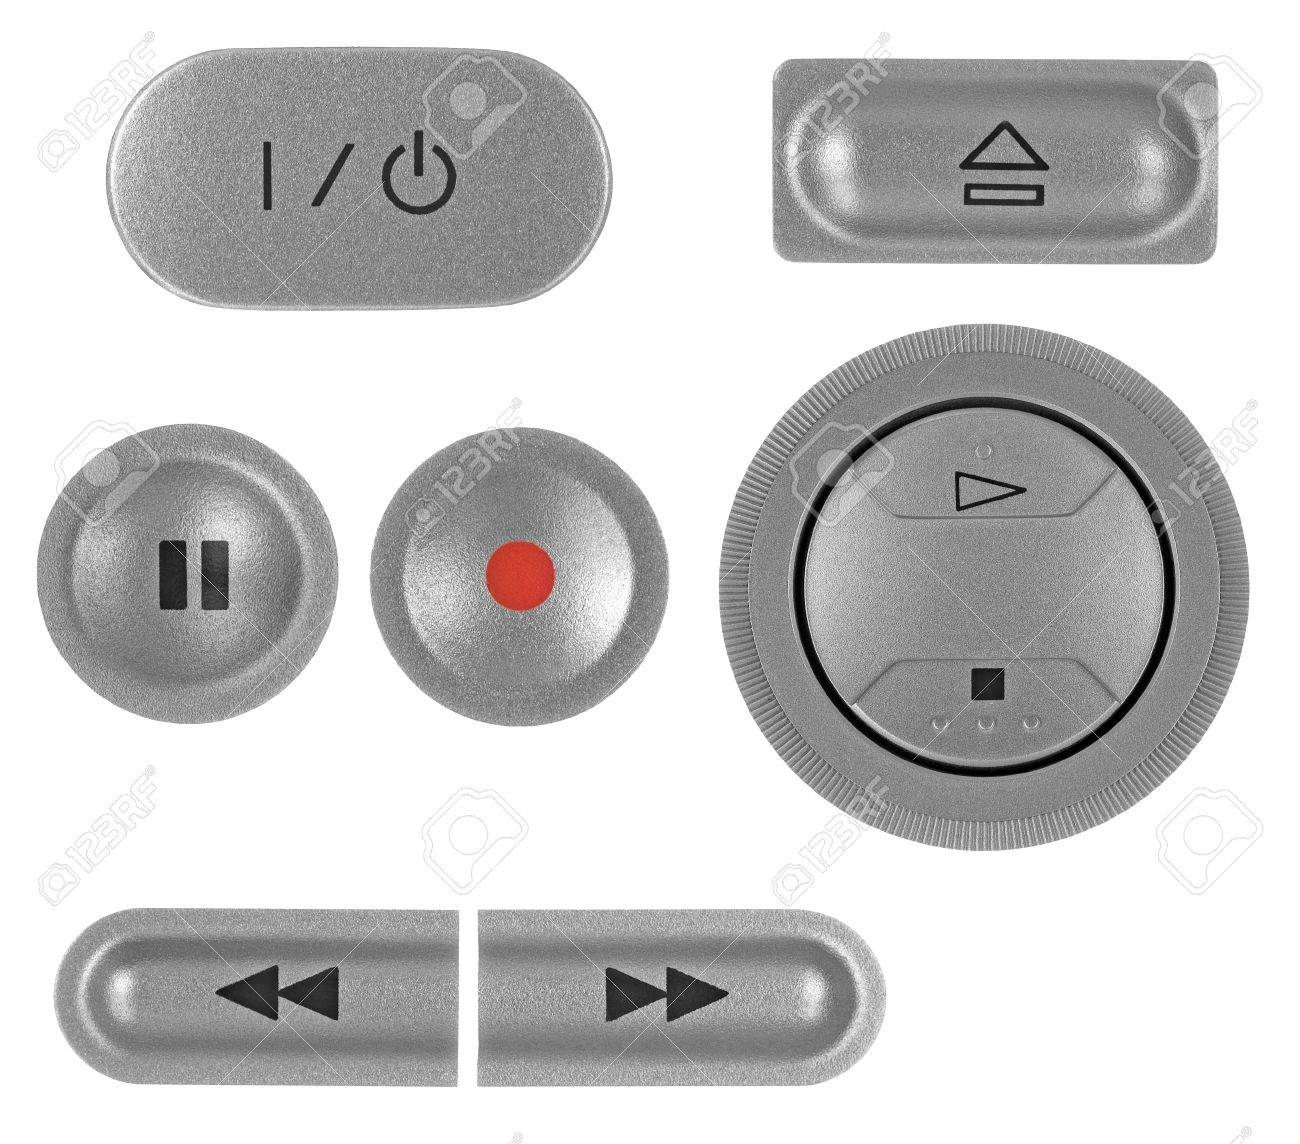 Natural silver grey metallic DVD recorder buttons set, isolated macro closeup Stock Photo - 8497177